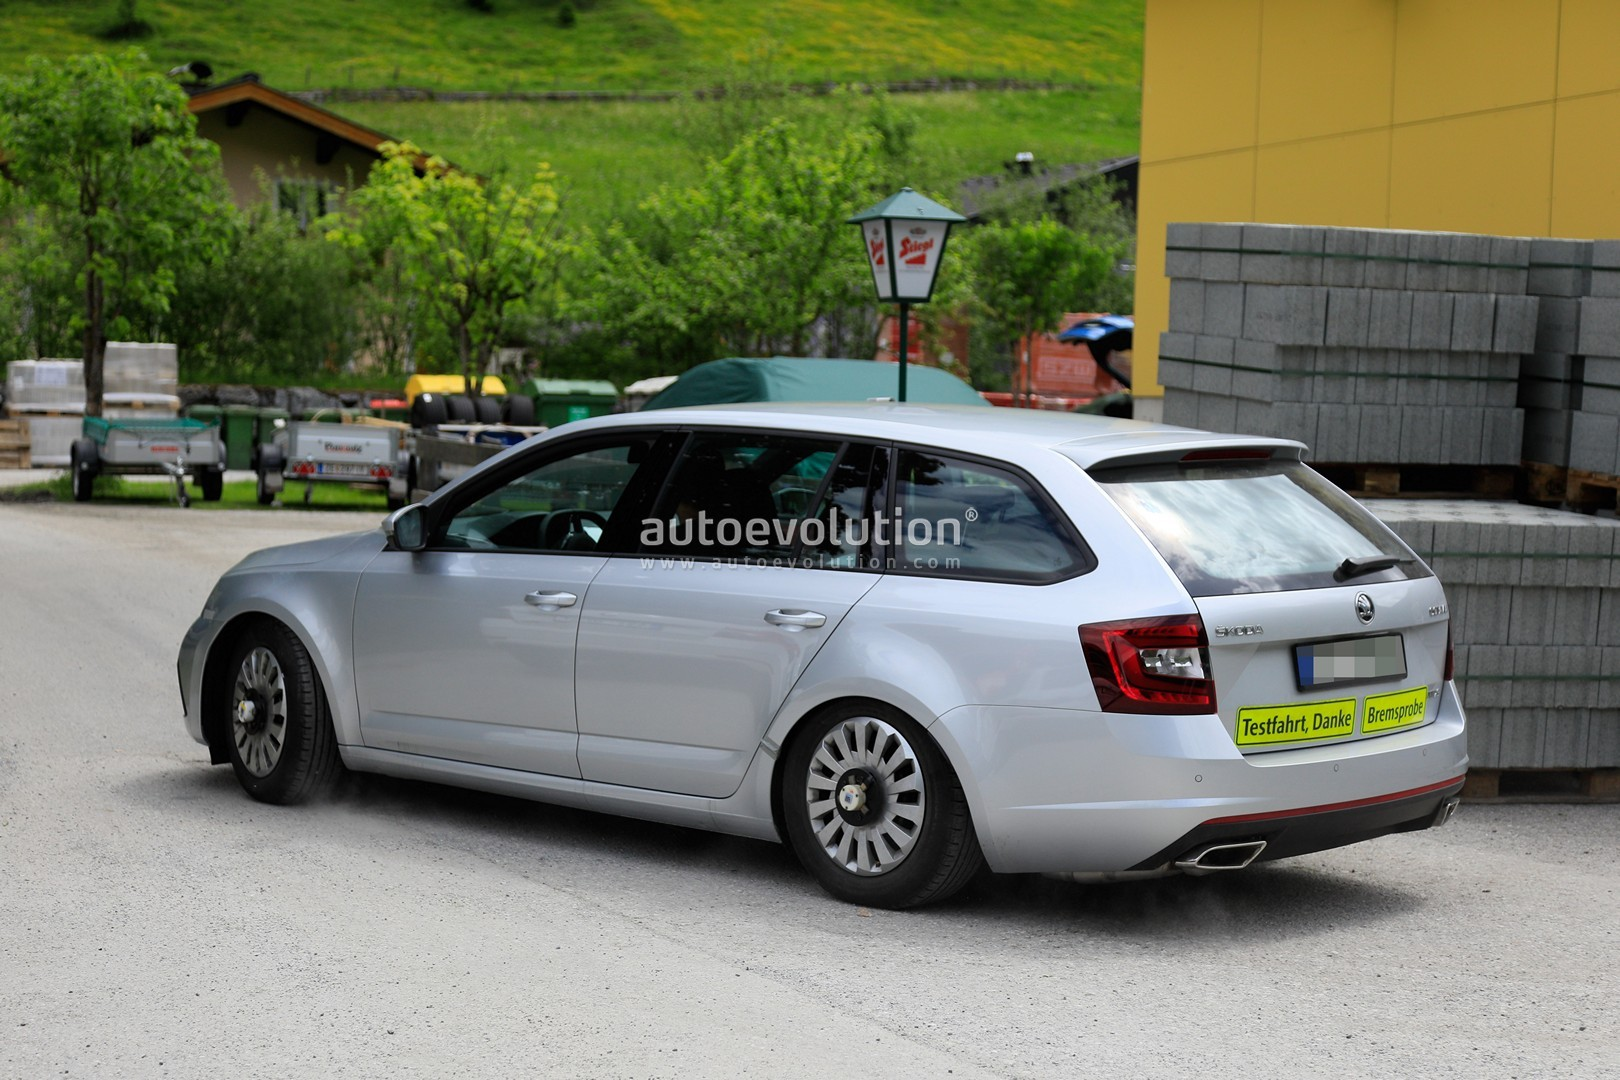 Skoda Superb Facelift 2018 >> 2020 Skoda Octavia Chassis Testing Mule Spied for First Time, Is a Lowered RS - autoevolution